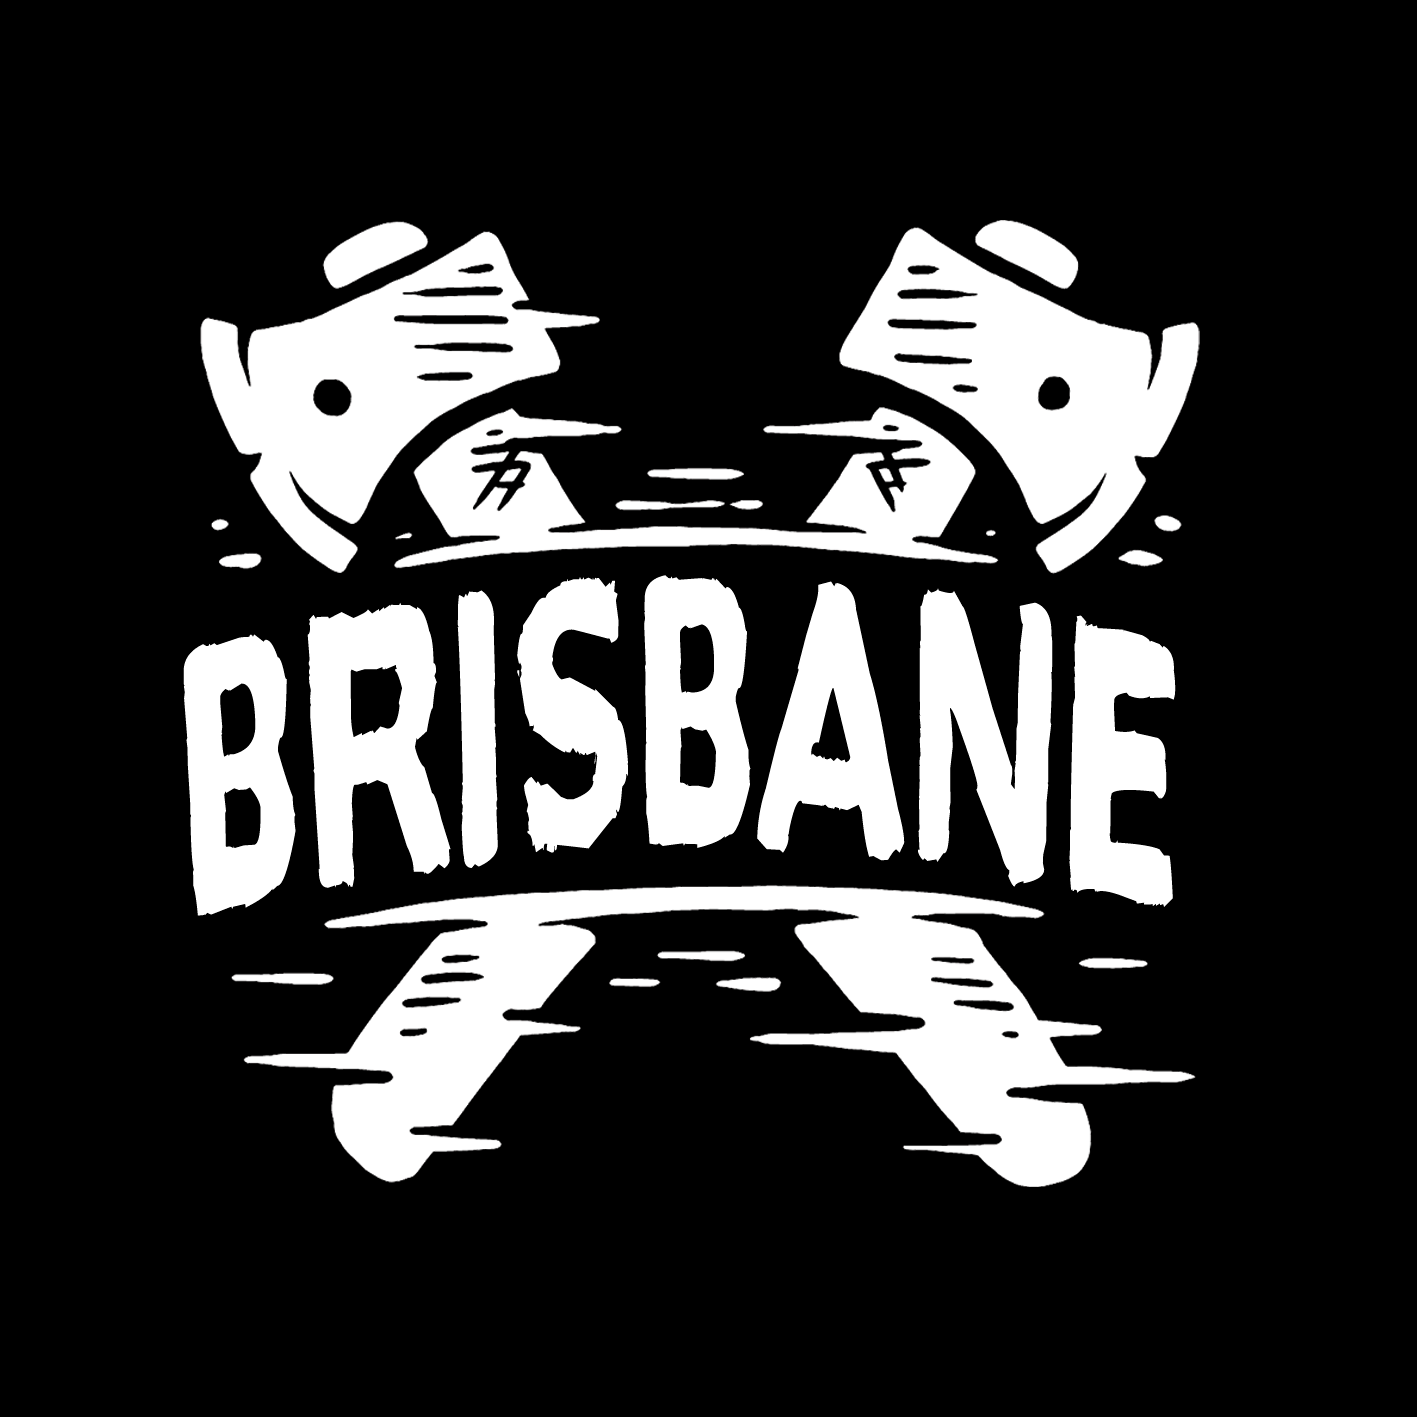 CLICK ABOVE TO PURCHASE A GIFT CERTIFICATE FOR BRISBANE AXE THROWING